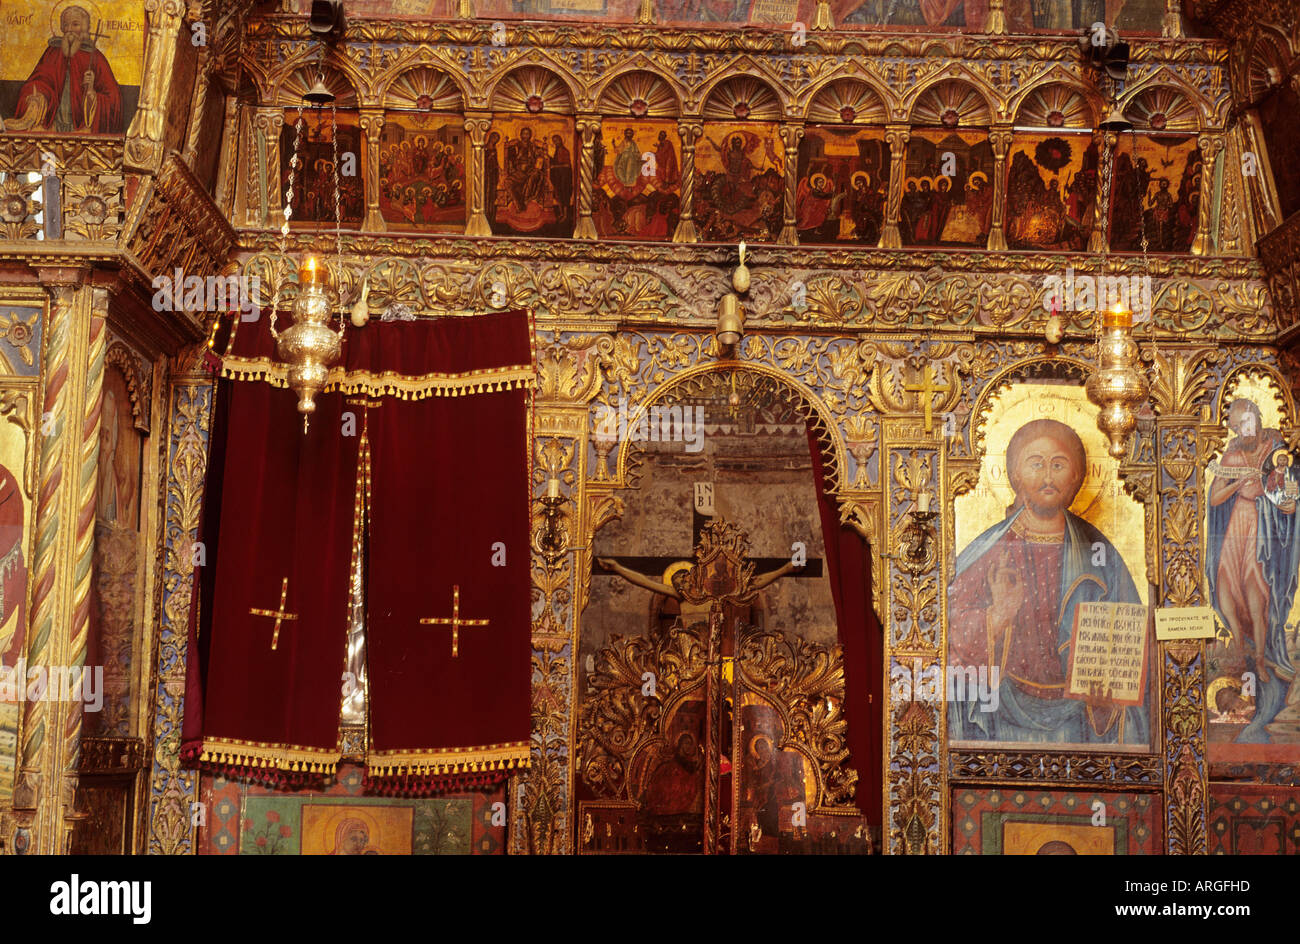 Detail of the decorated iconostasis in the Panagia Angeloktistos church which was rebuilt in the 12th century on Stock Photo